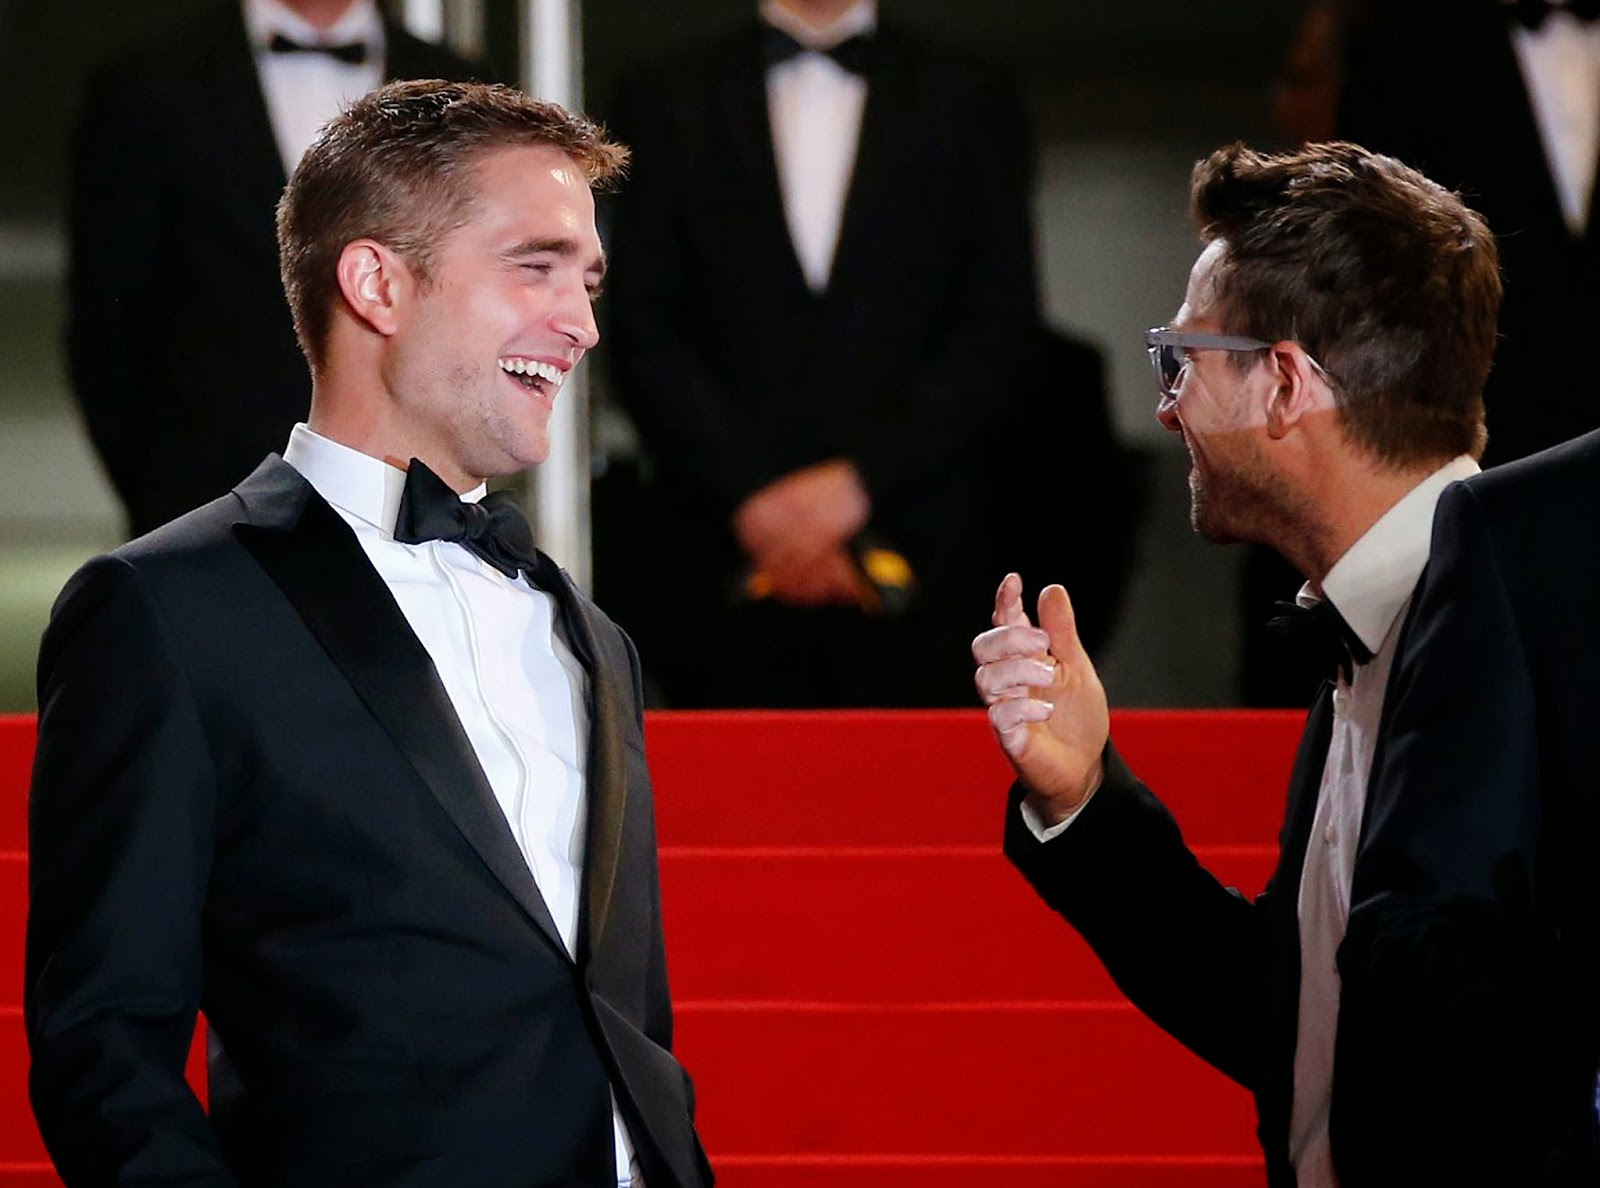 David Michôd fala sobre Robert e 'The Rover' em entrevista